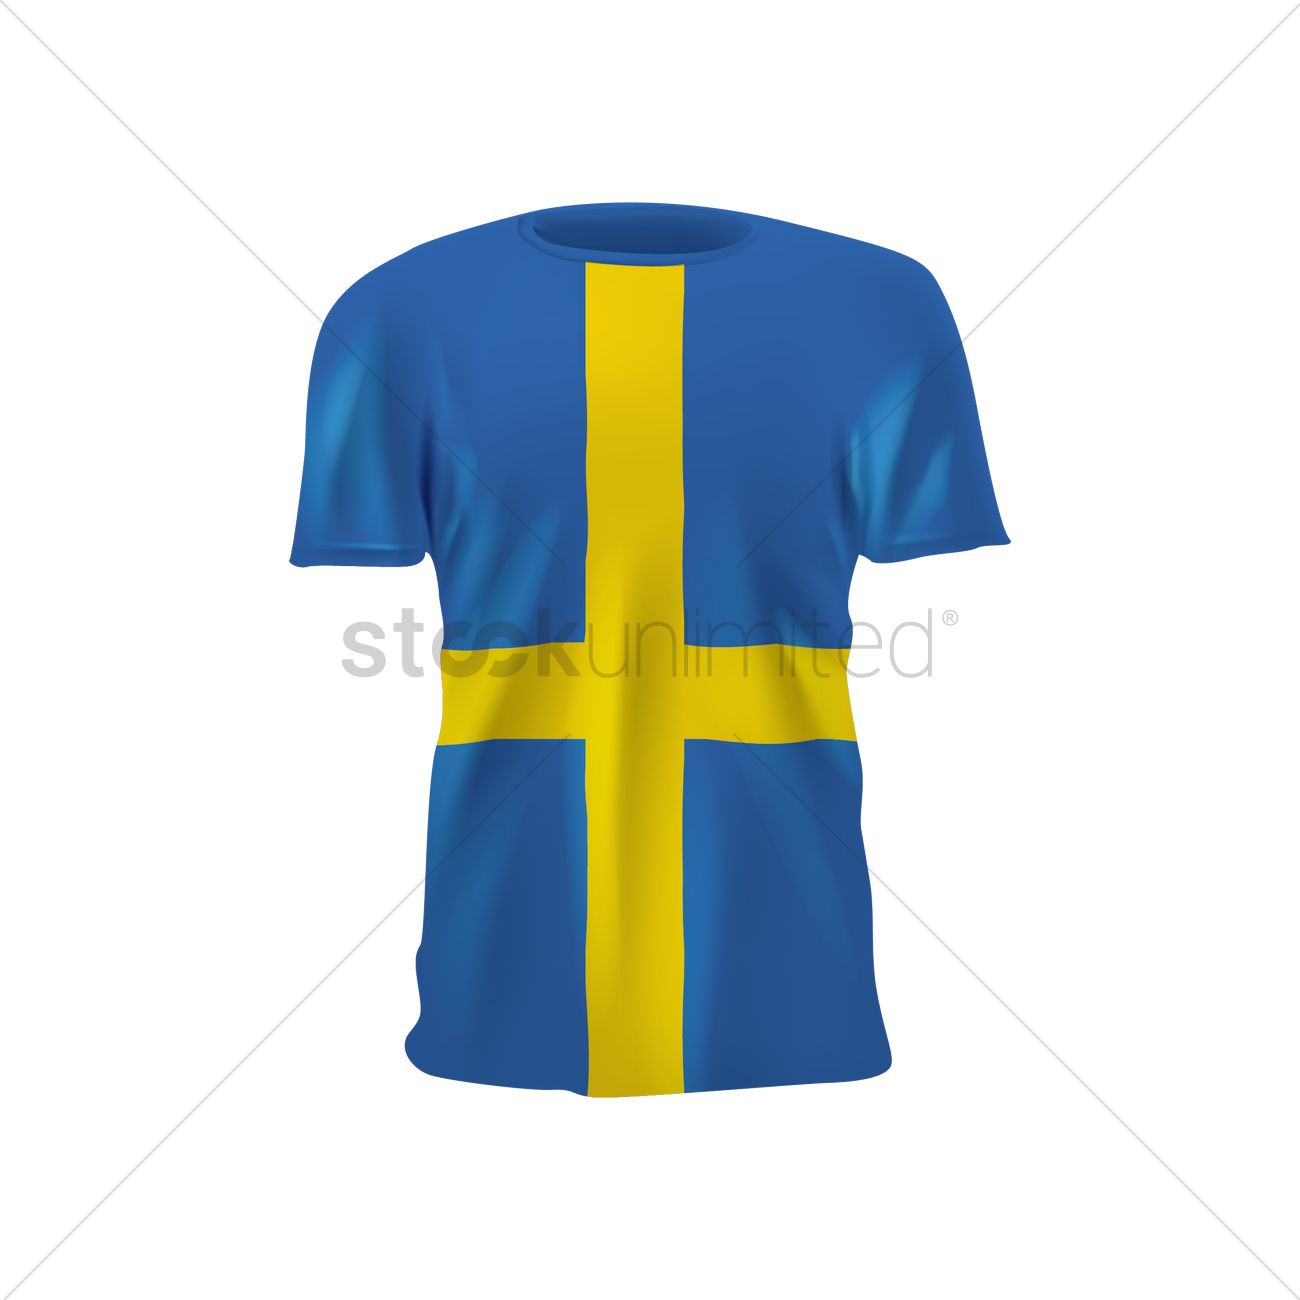 detailed look a1cea 6ef0b Sweden soccer jersey Vector Image - 1818902   StockUnlimited